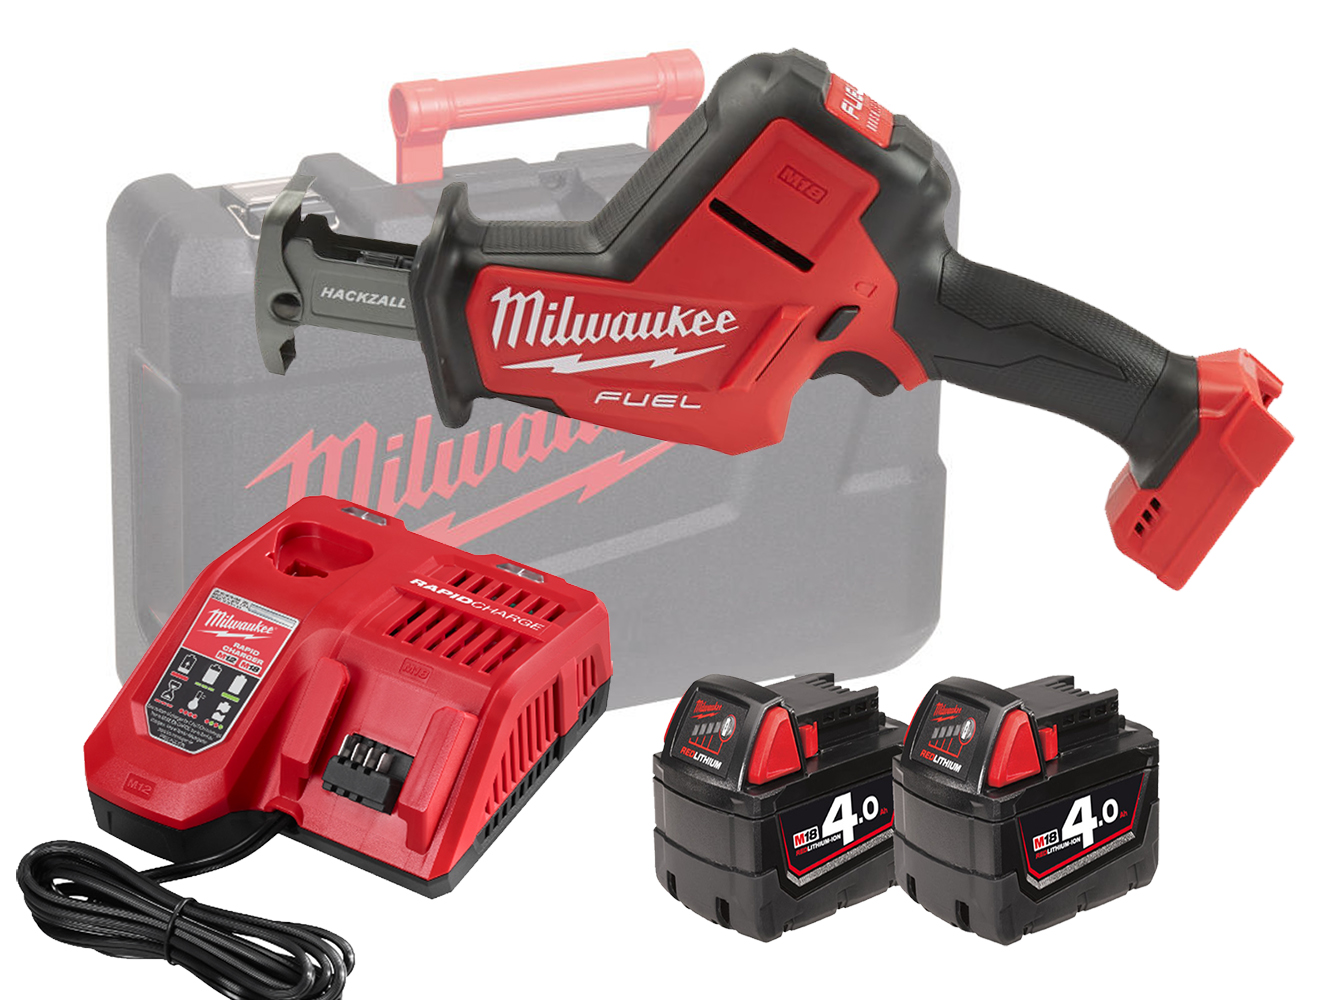 Milwaukee M18FHZ 18V FUEL Brushless Hackzall (Reciprocating Saw) - 4.0ah Pack